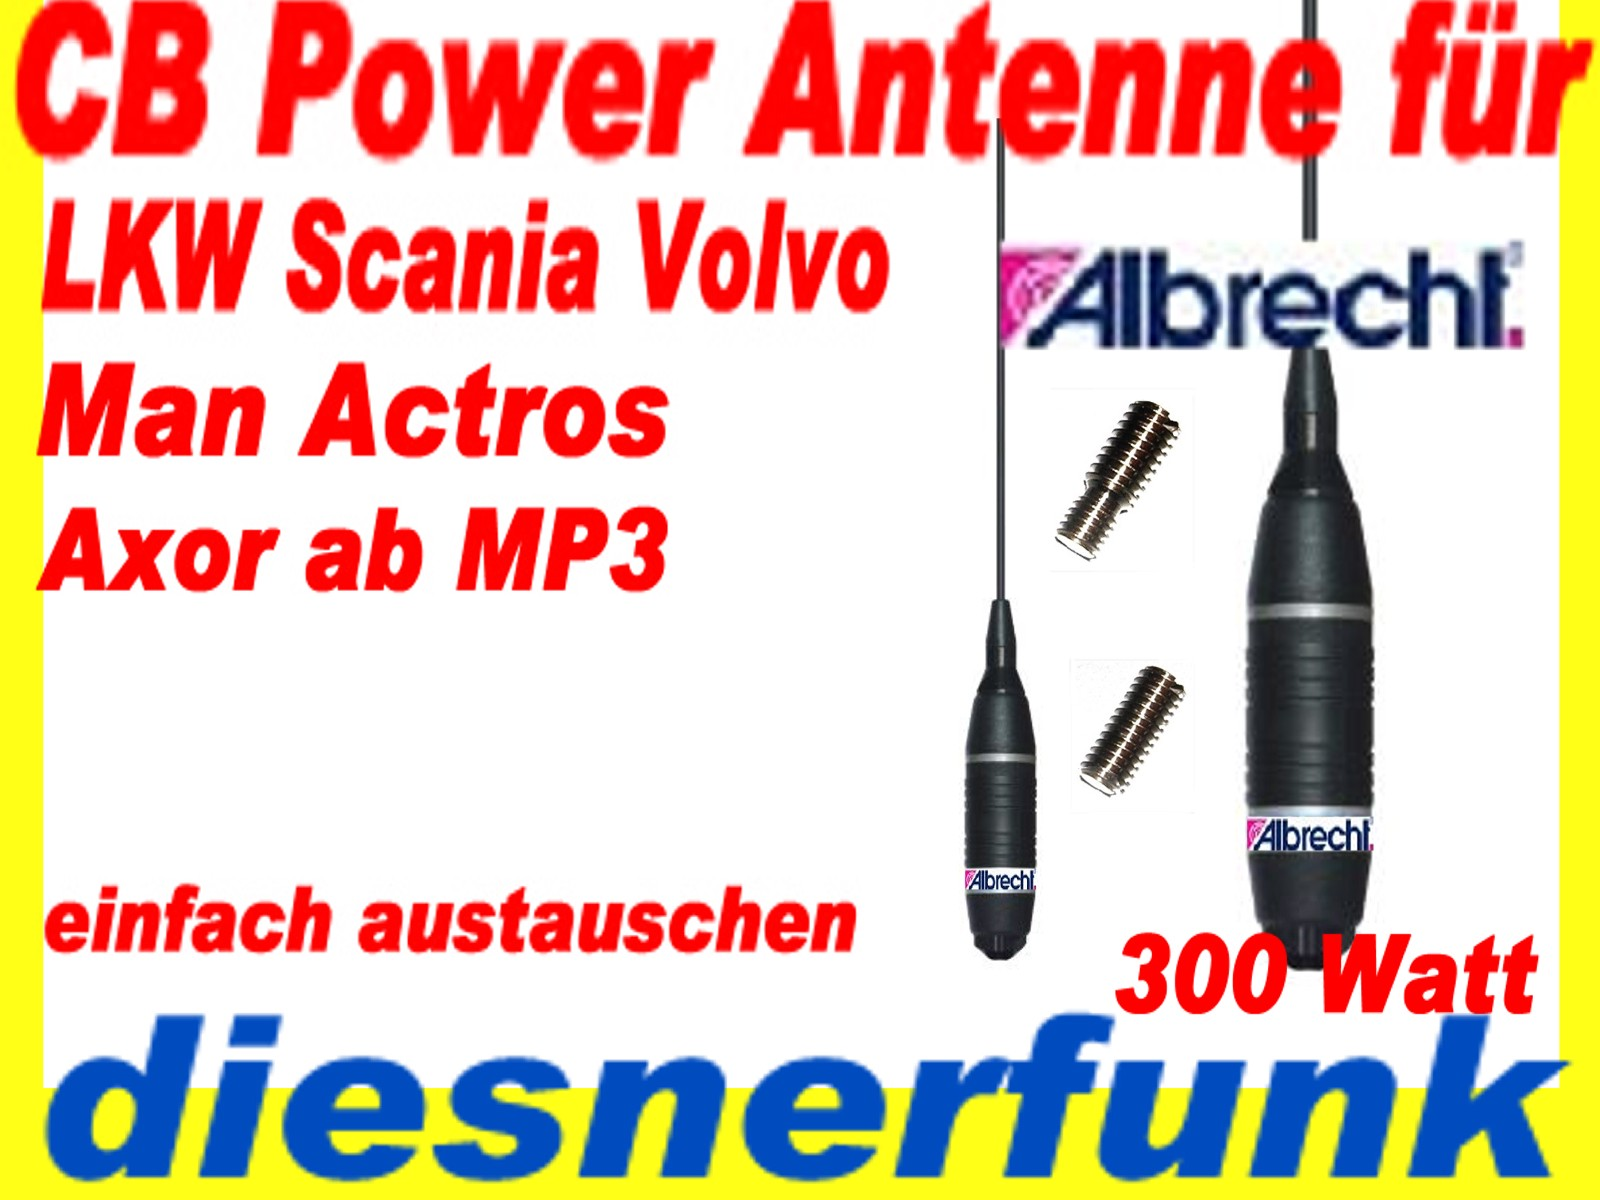 cb funk antenne ninja 27 m6 f r lkw scania volvo axor. Black Bedroom Furniture Sets. Home Design Ideas